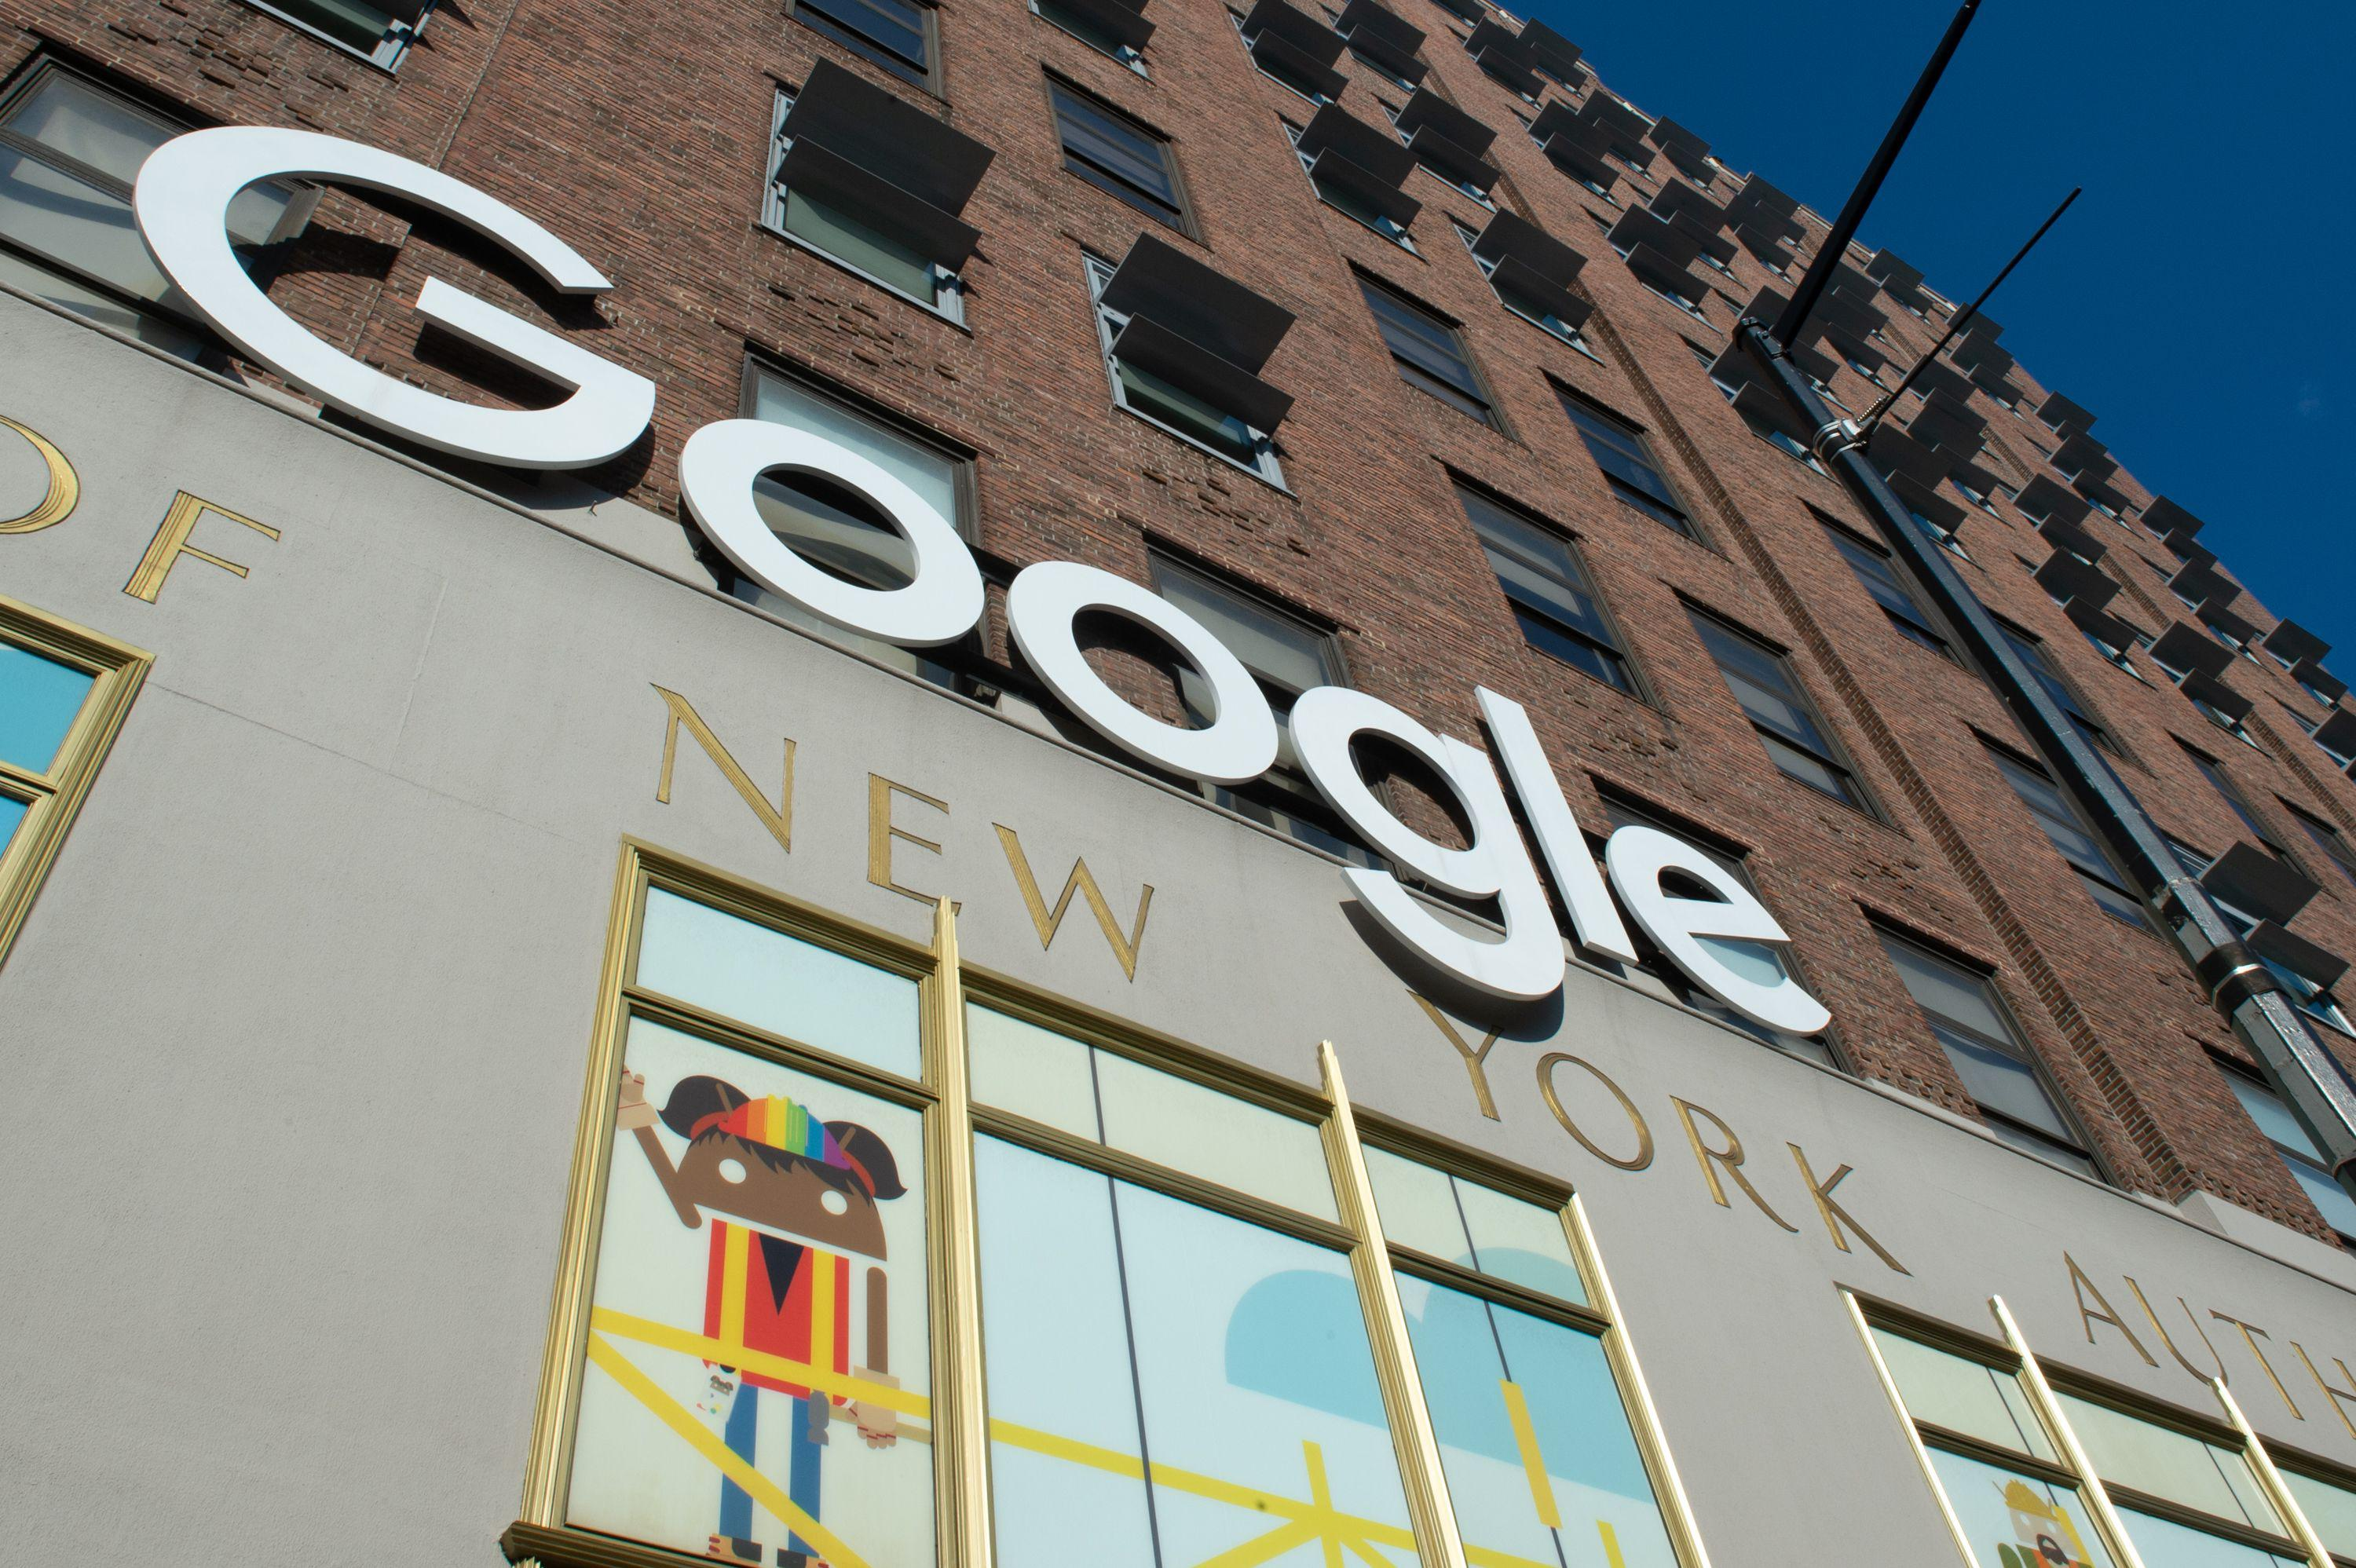 Google's New York headquarters.